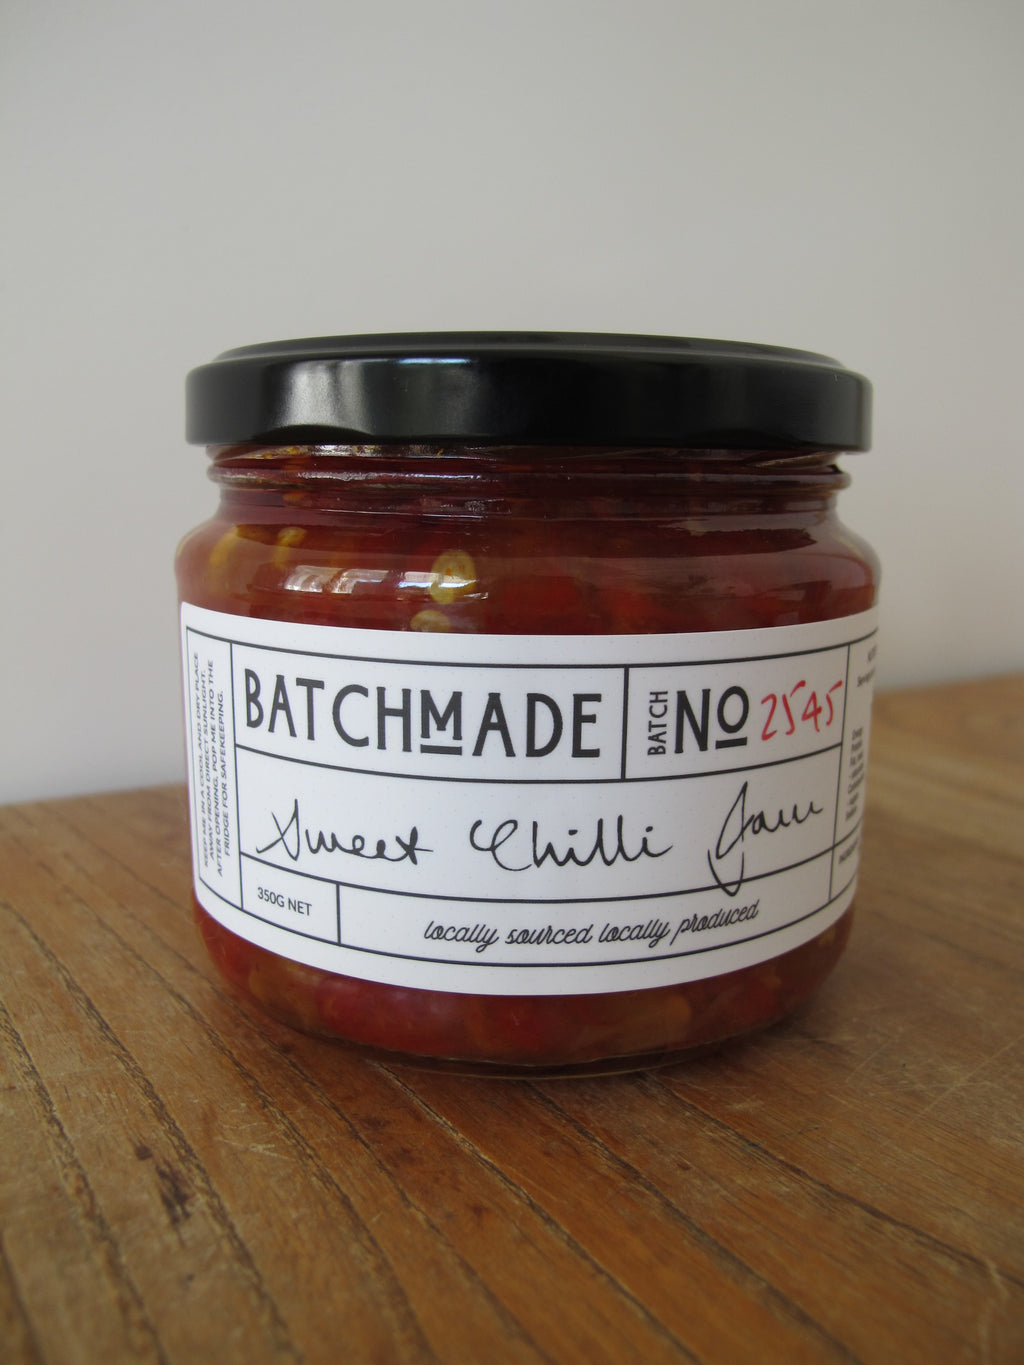 Sweet Chilli jam by BatchMade